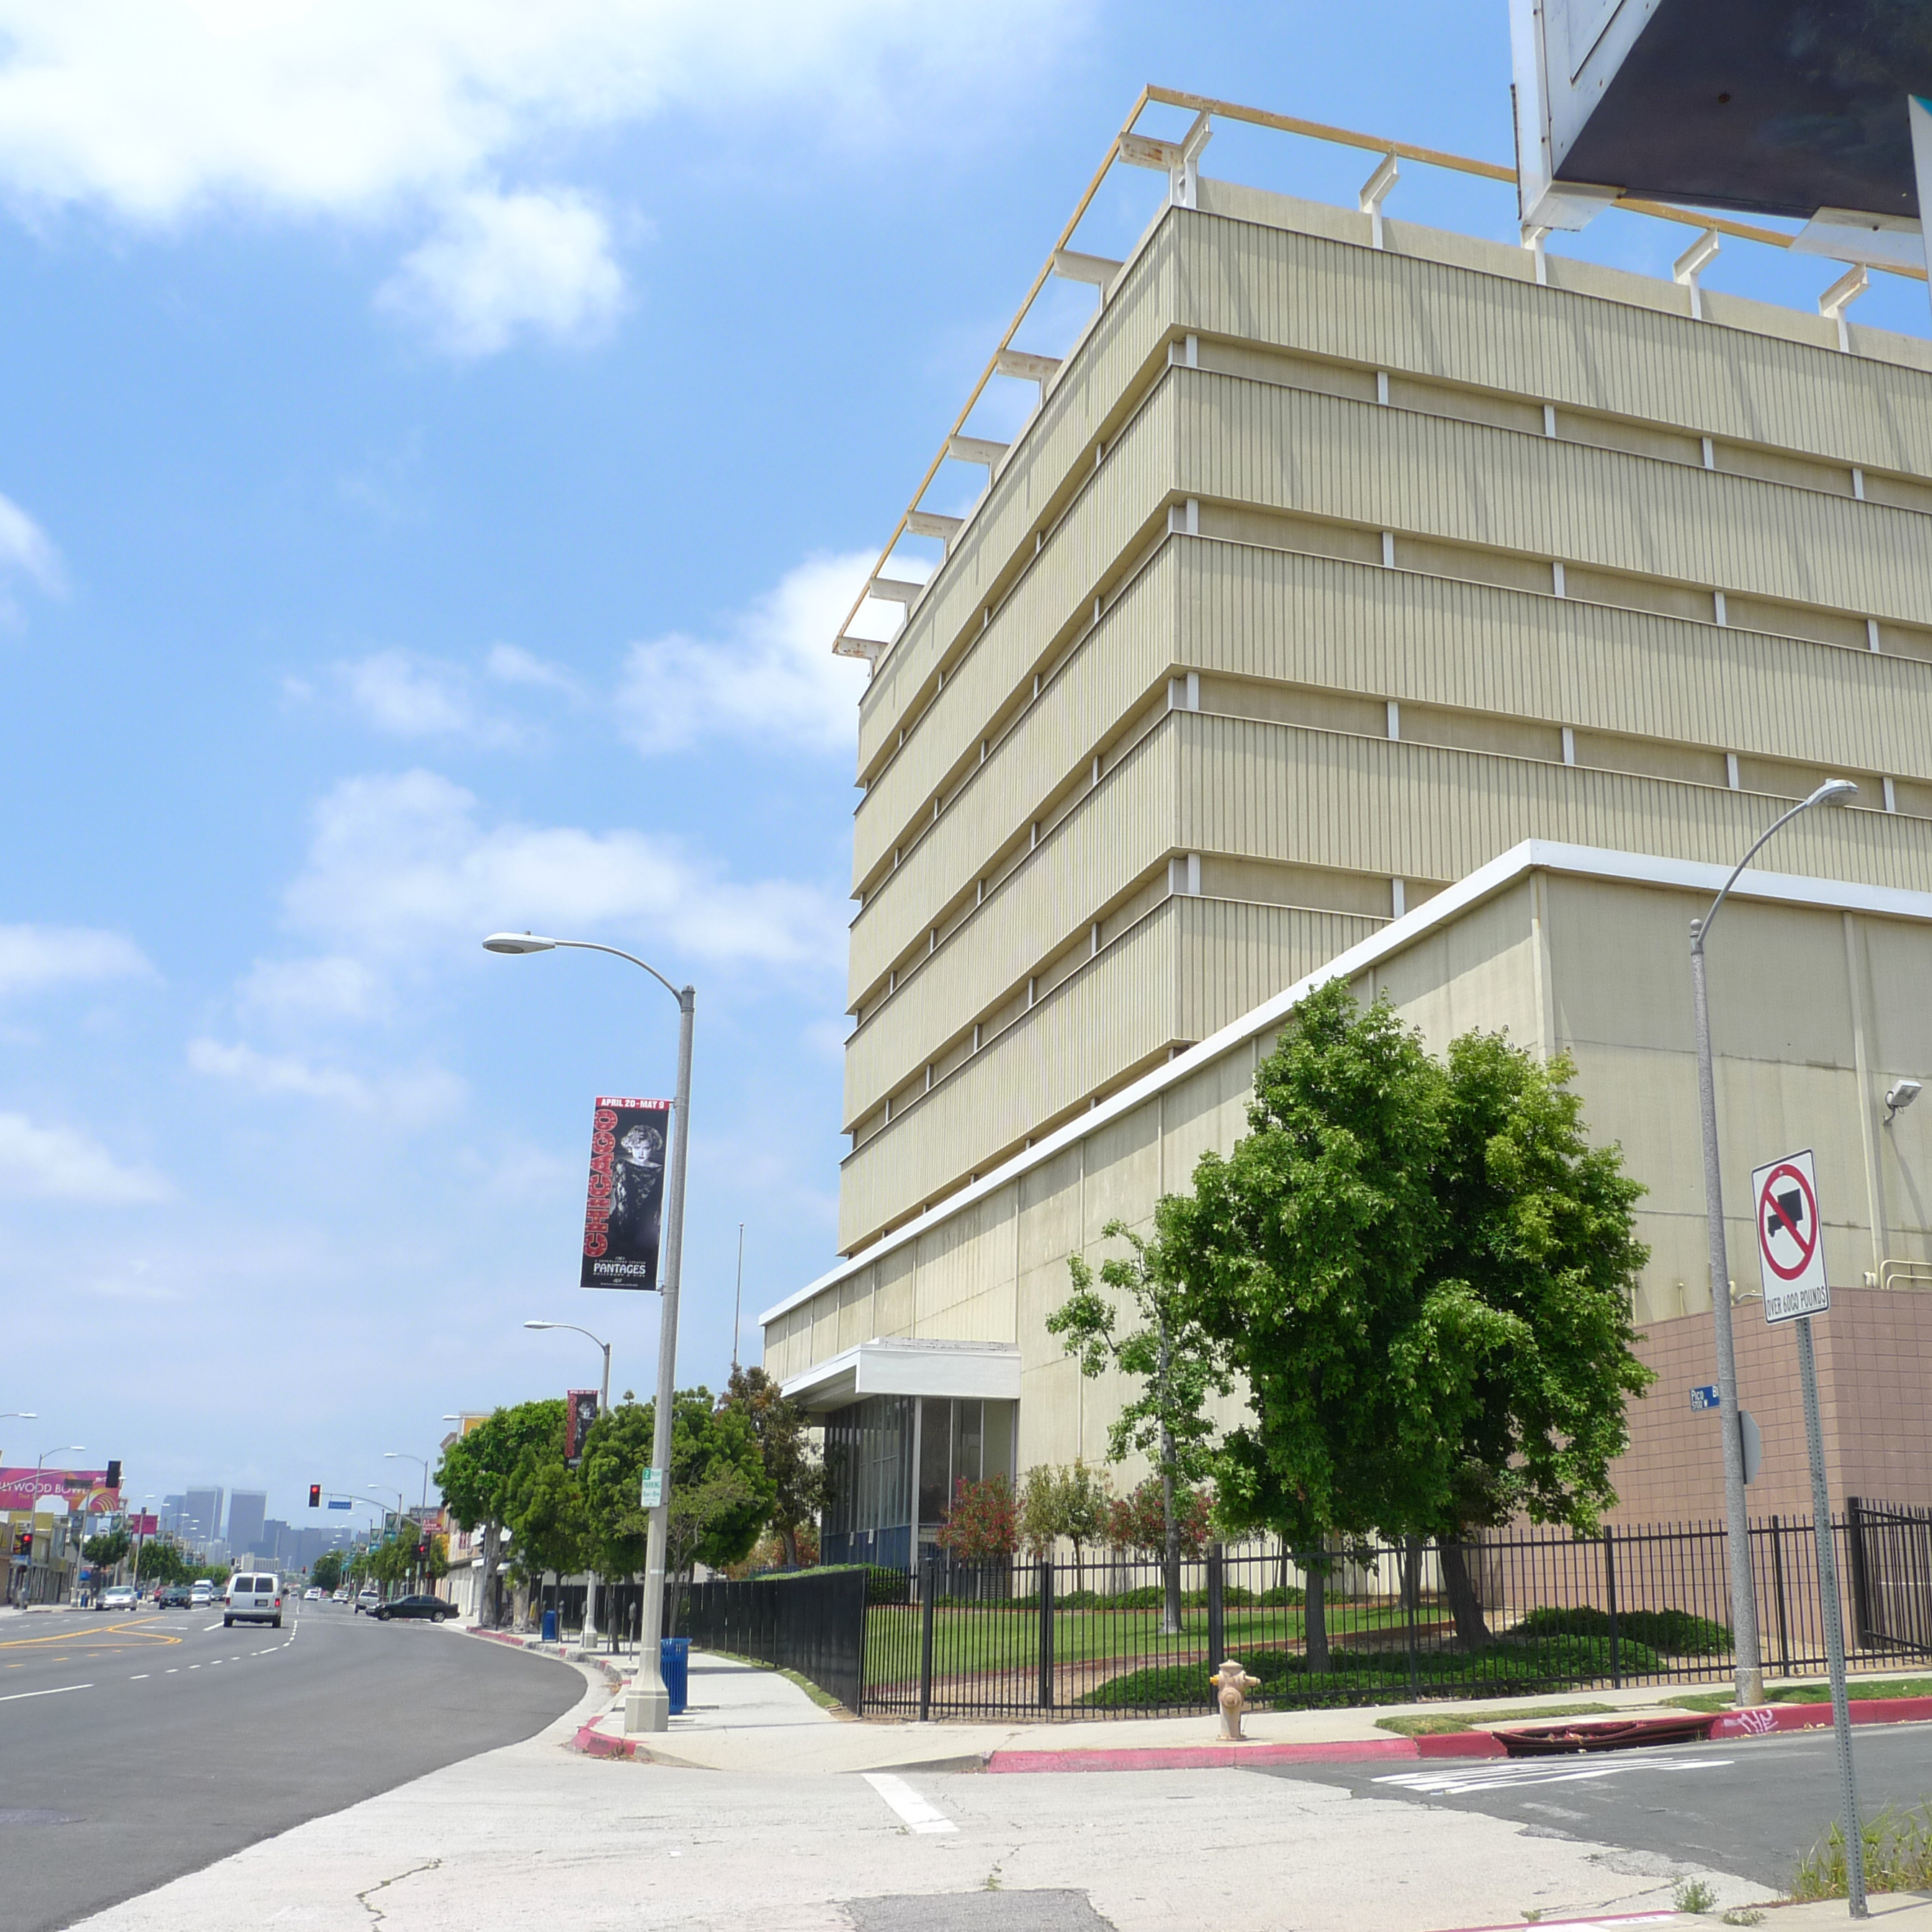 The office building at the intersection of Pico Boulevard and Genesee Avenue actually covers a working oil pump (note the lack of windows).